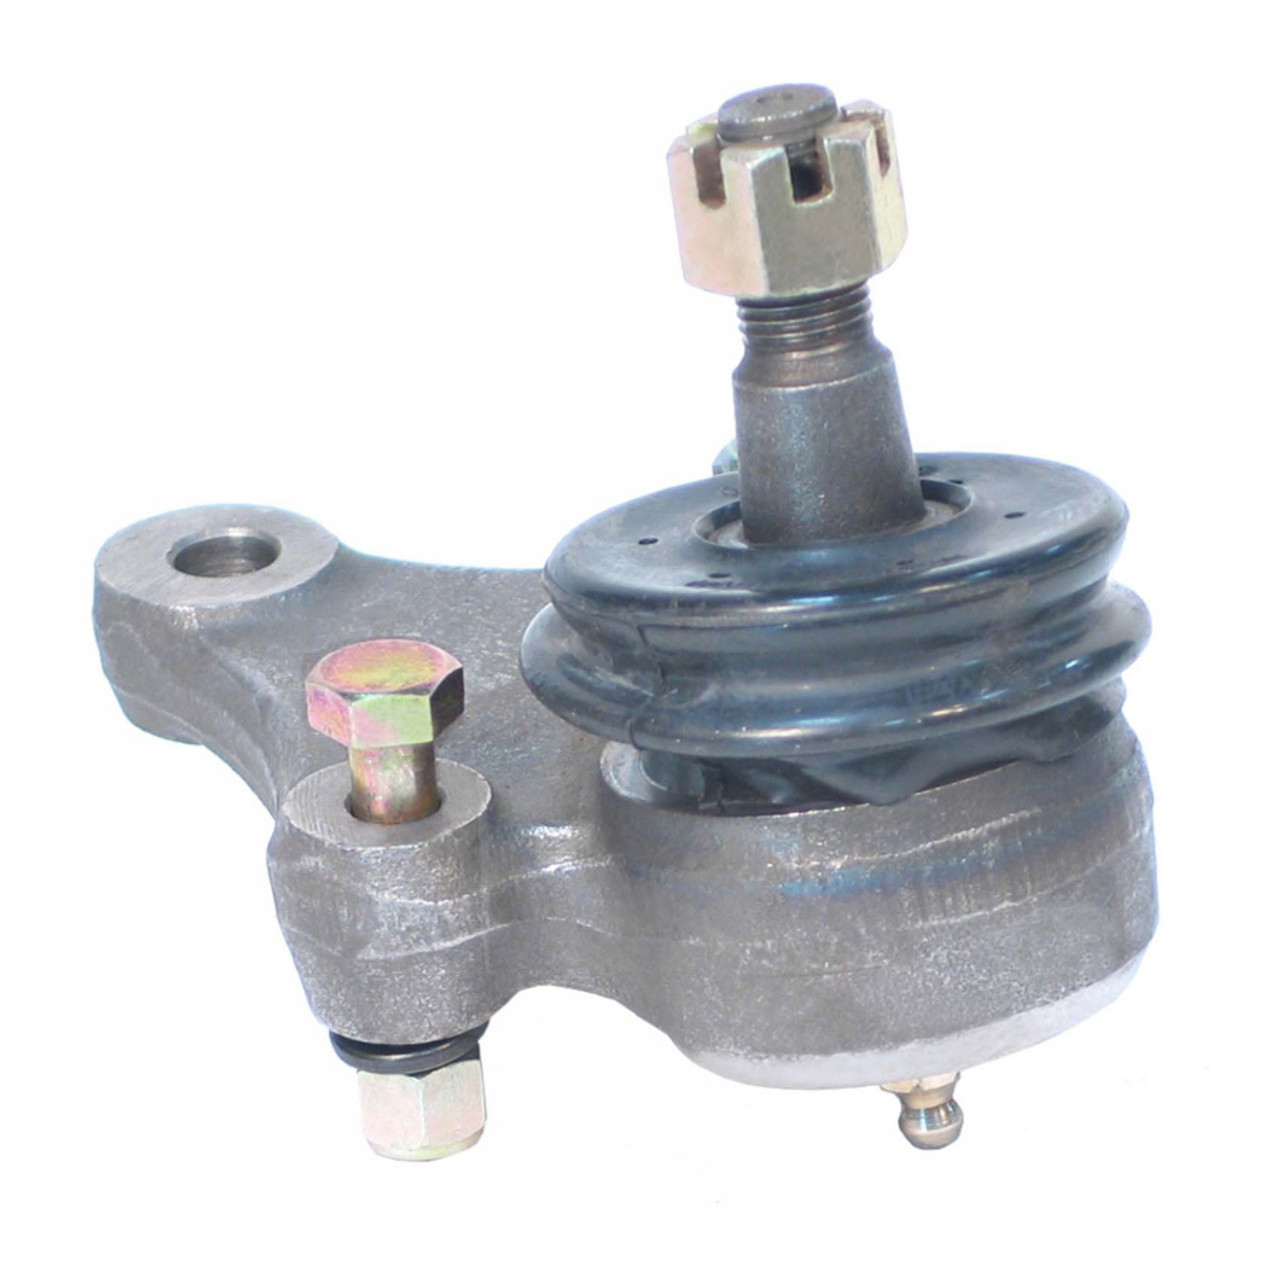 hight resolution of rare parts lower right ball joint 1965 1967 nissan datsun 411 10210 fcrc machine